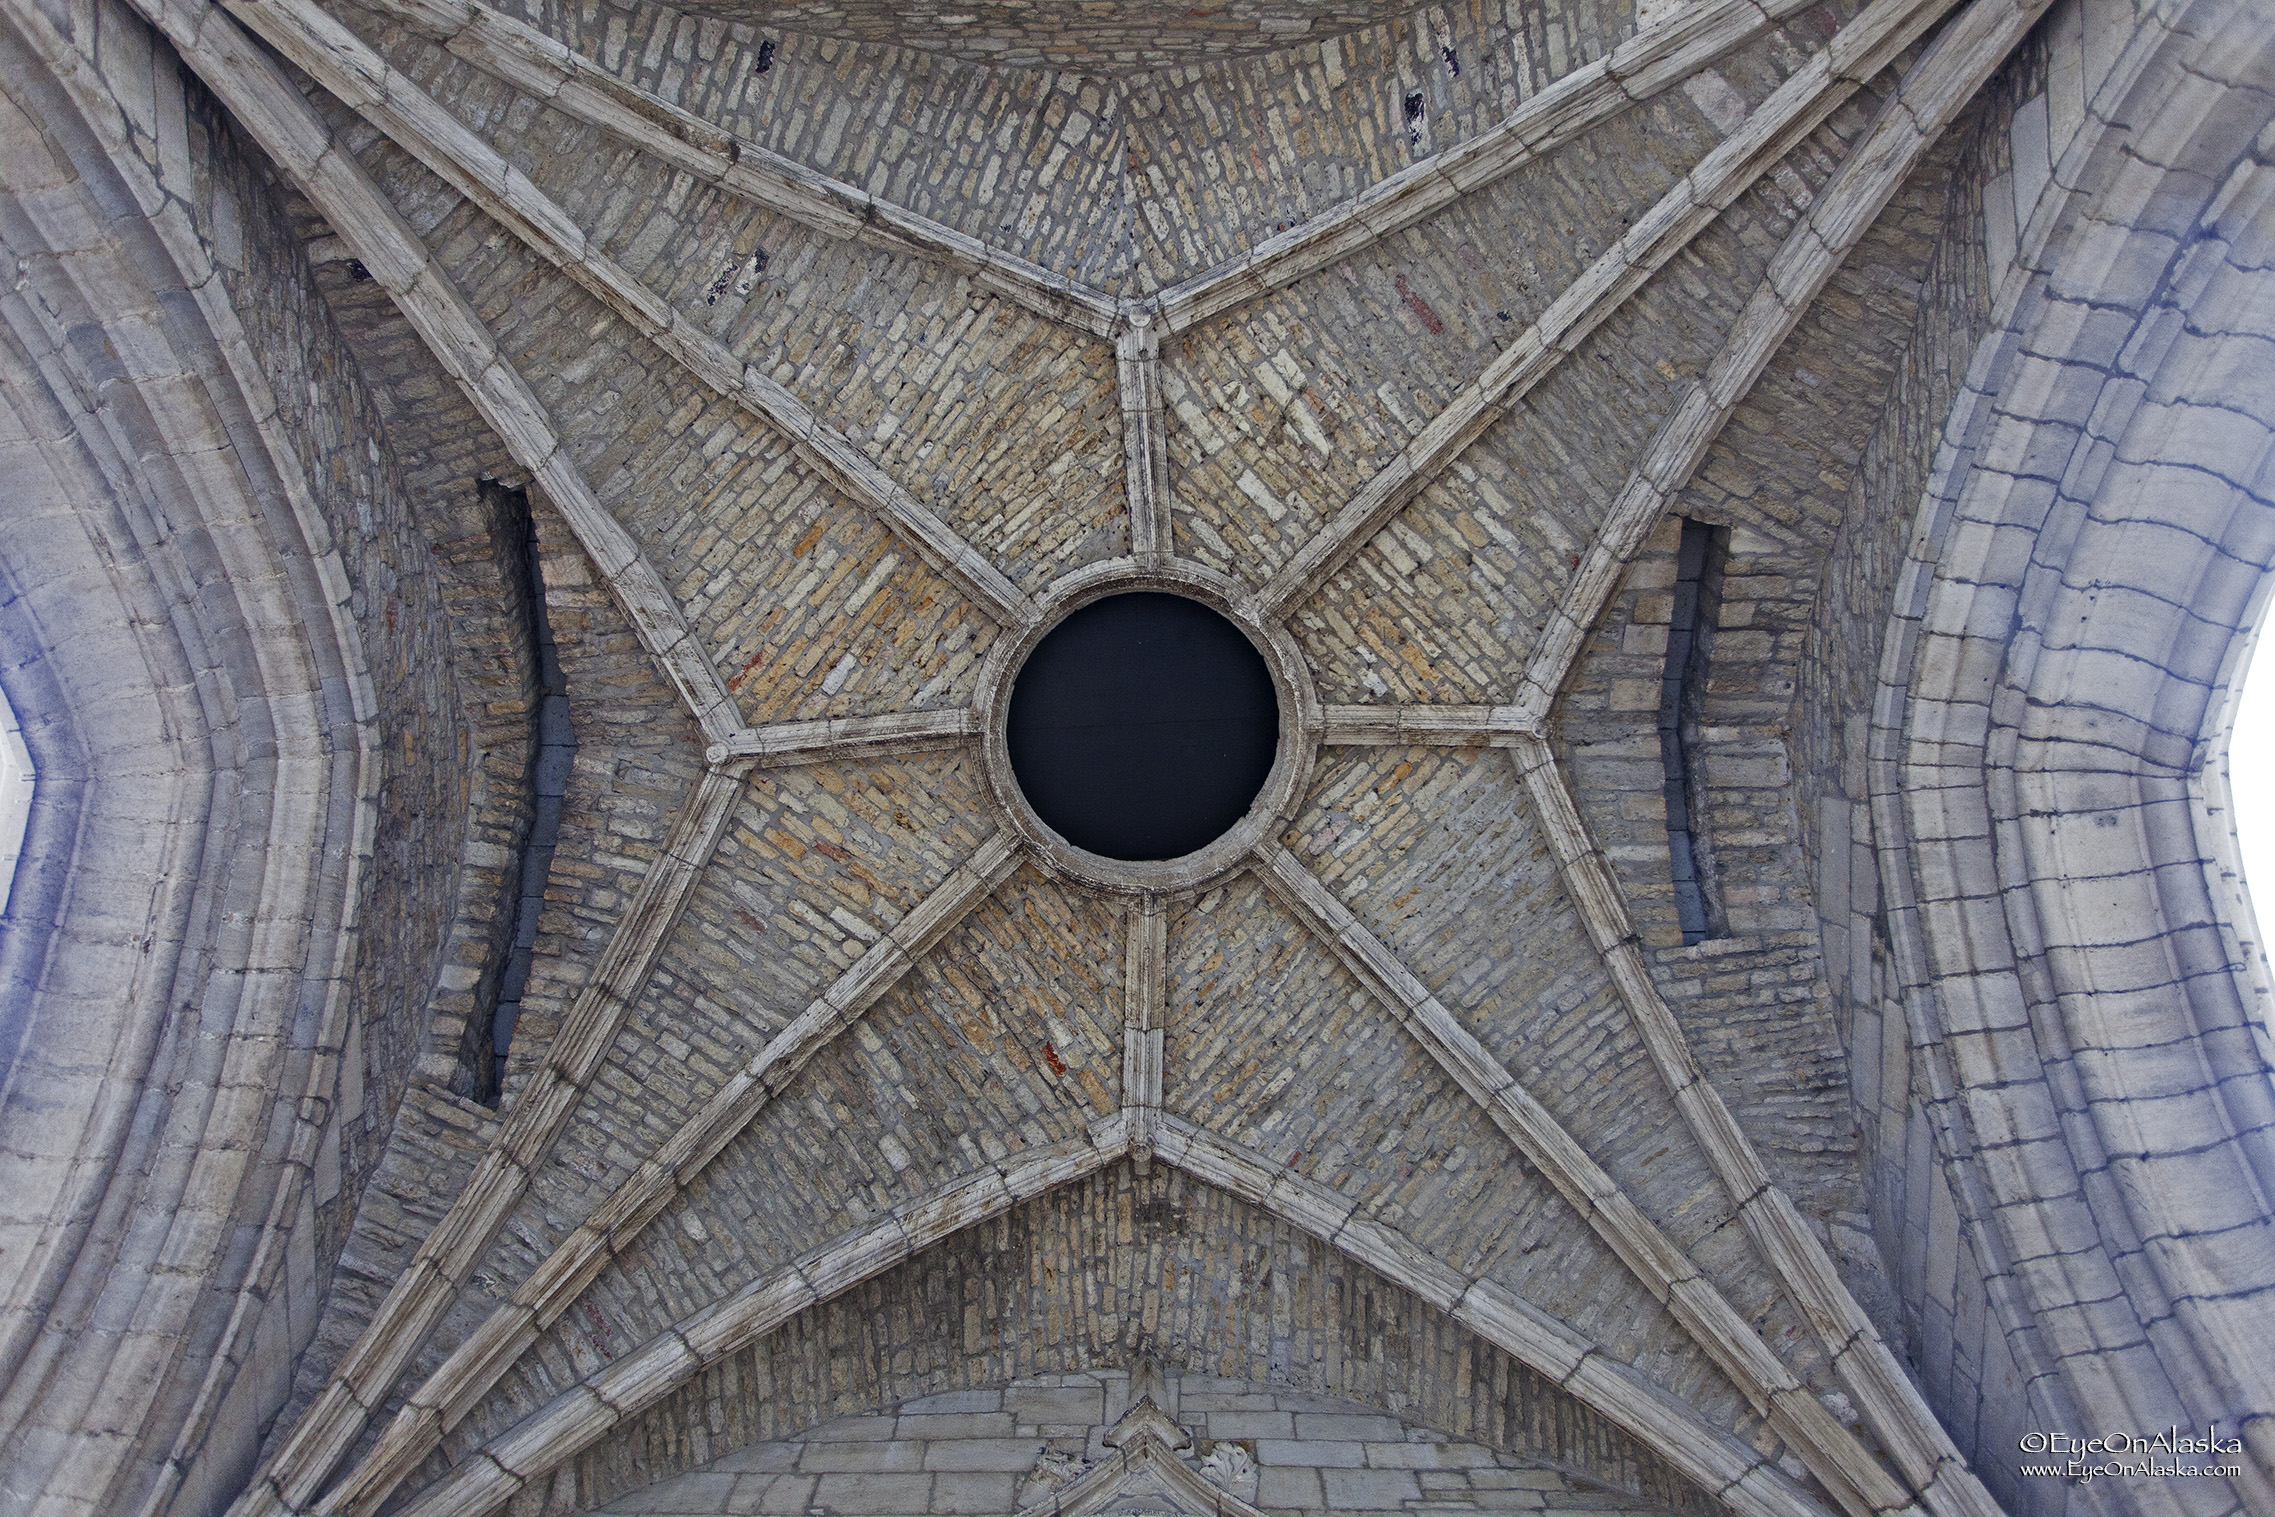 Trivia time. What do you call that hole at the top of a dome? It's the Oculus.